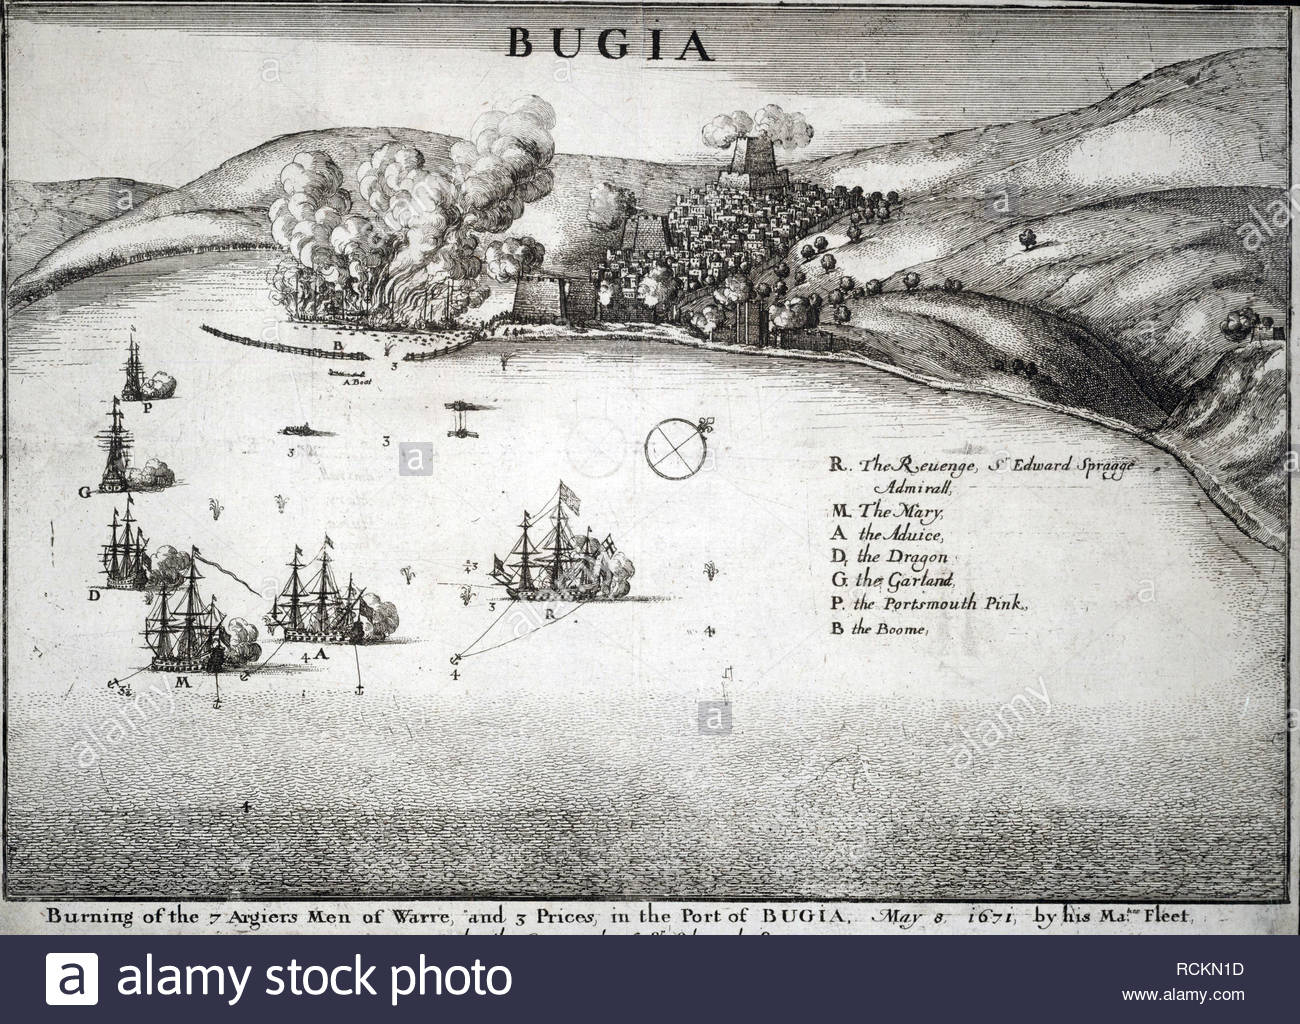 Naval Battle at Bugia from 8th May 1671, etching by Bohemian etcher Wenceslaus Hollar from 1600s Stock Photo